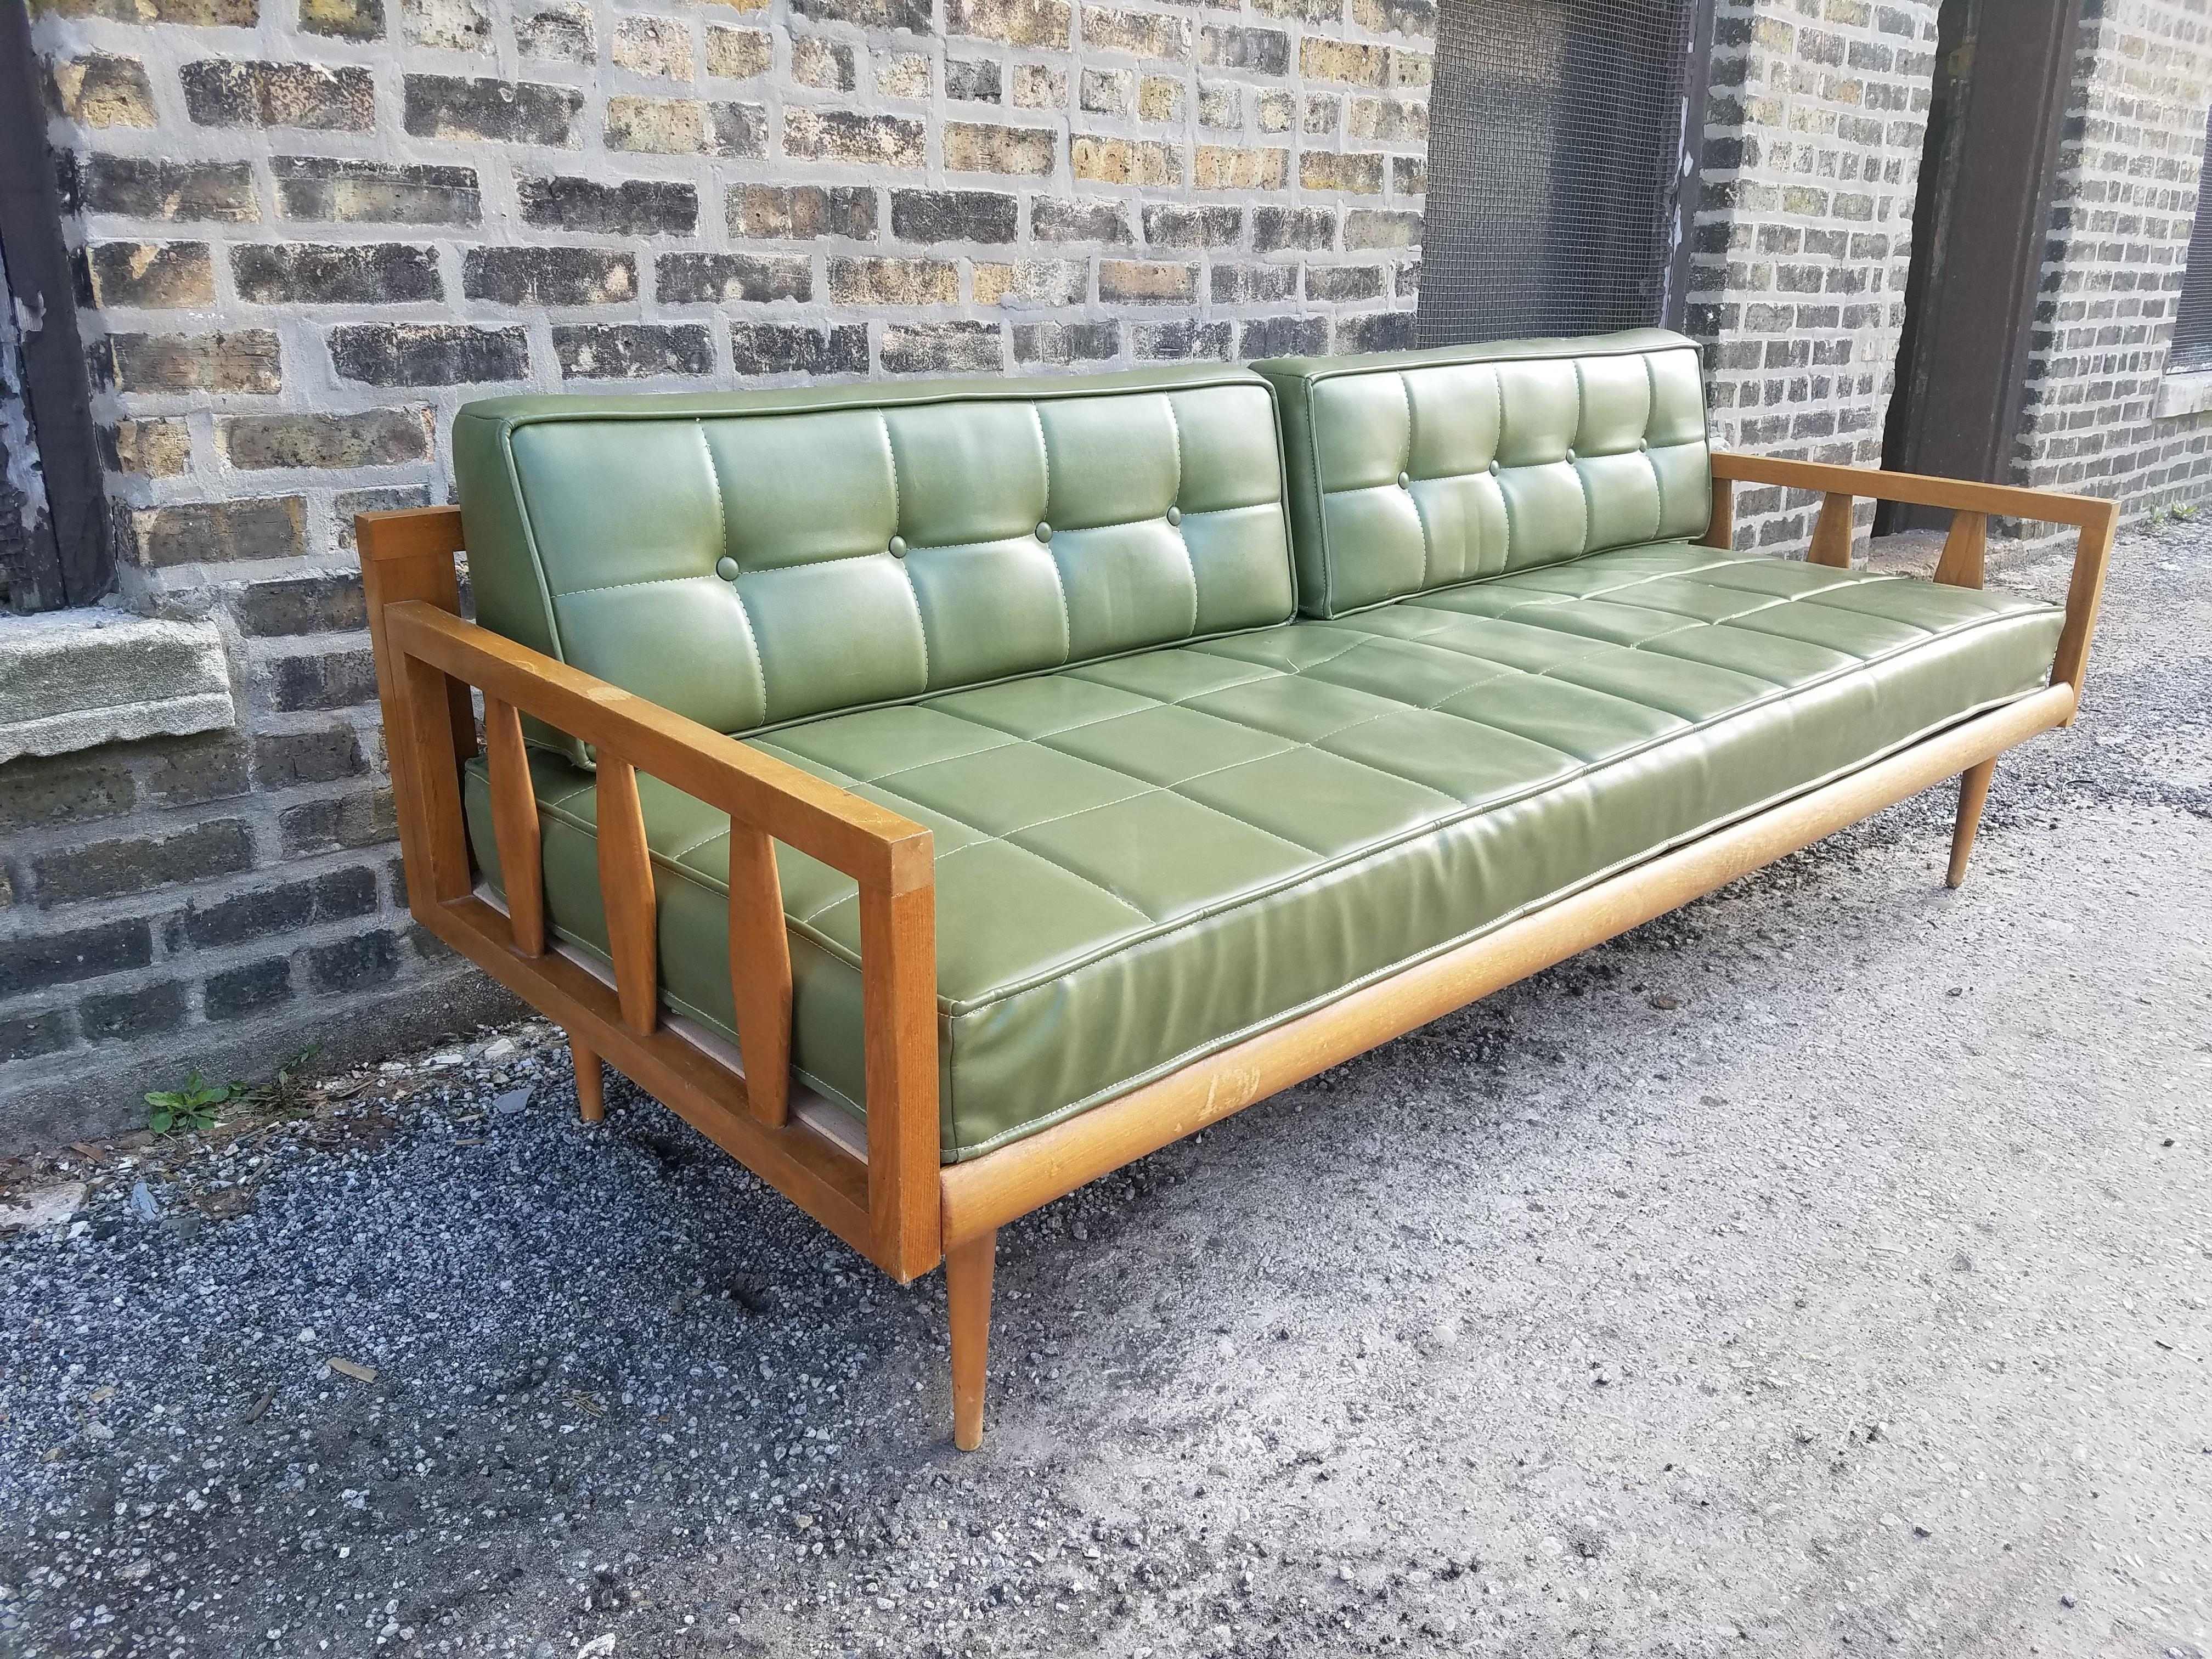 Exceptional Vintage Green Vinyl Mid Century Couch / Daybed   Image 3 Of 8